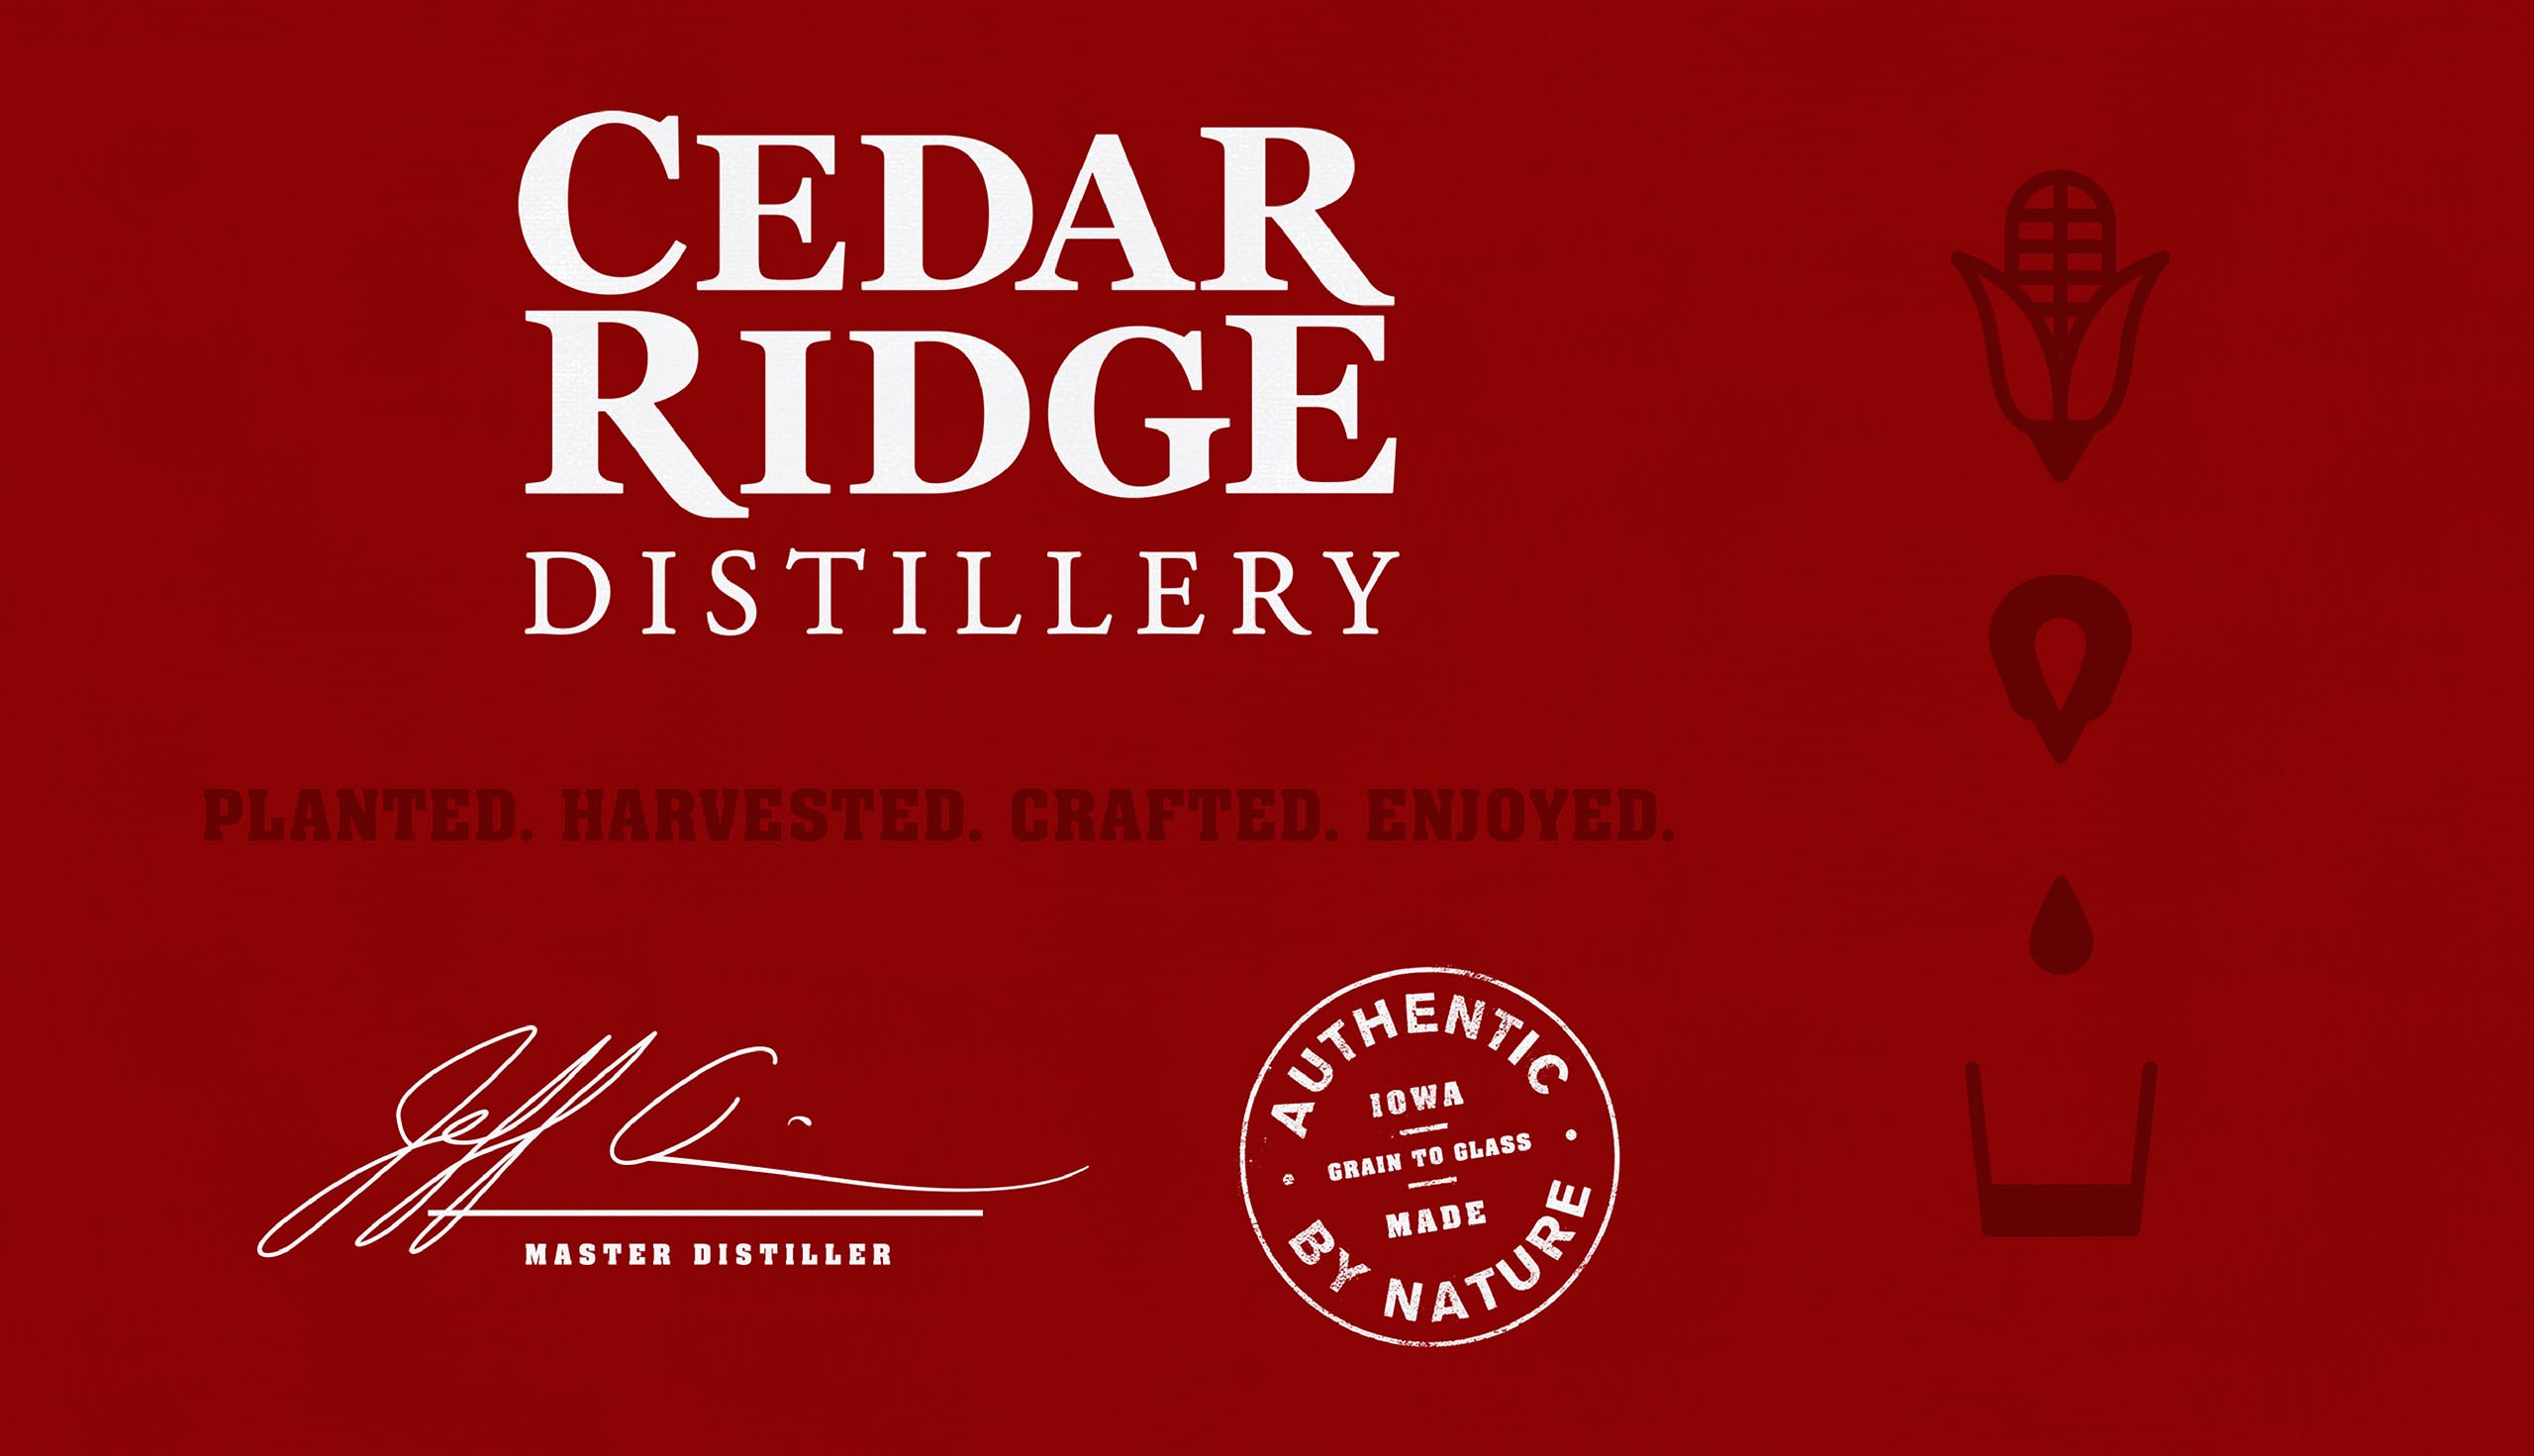 Cedar Ridge Distillery brand elements